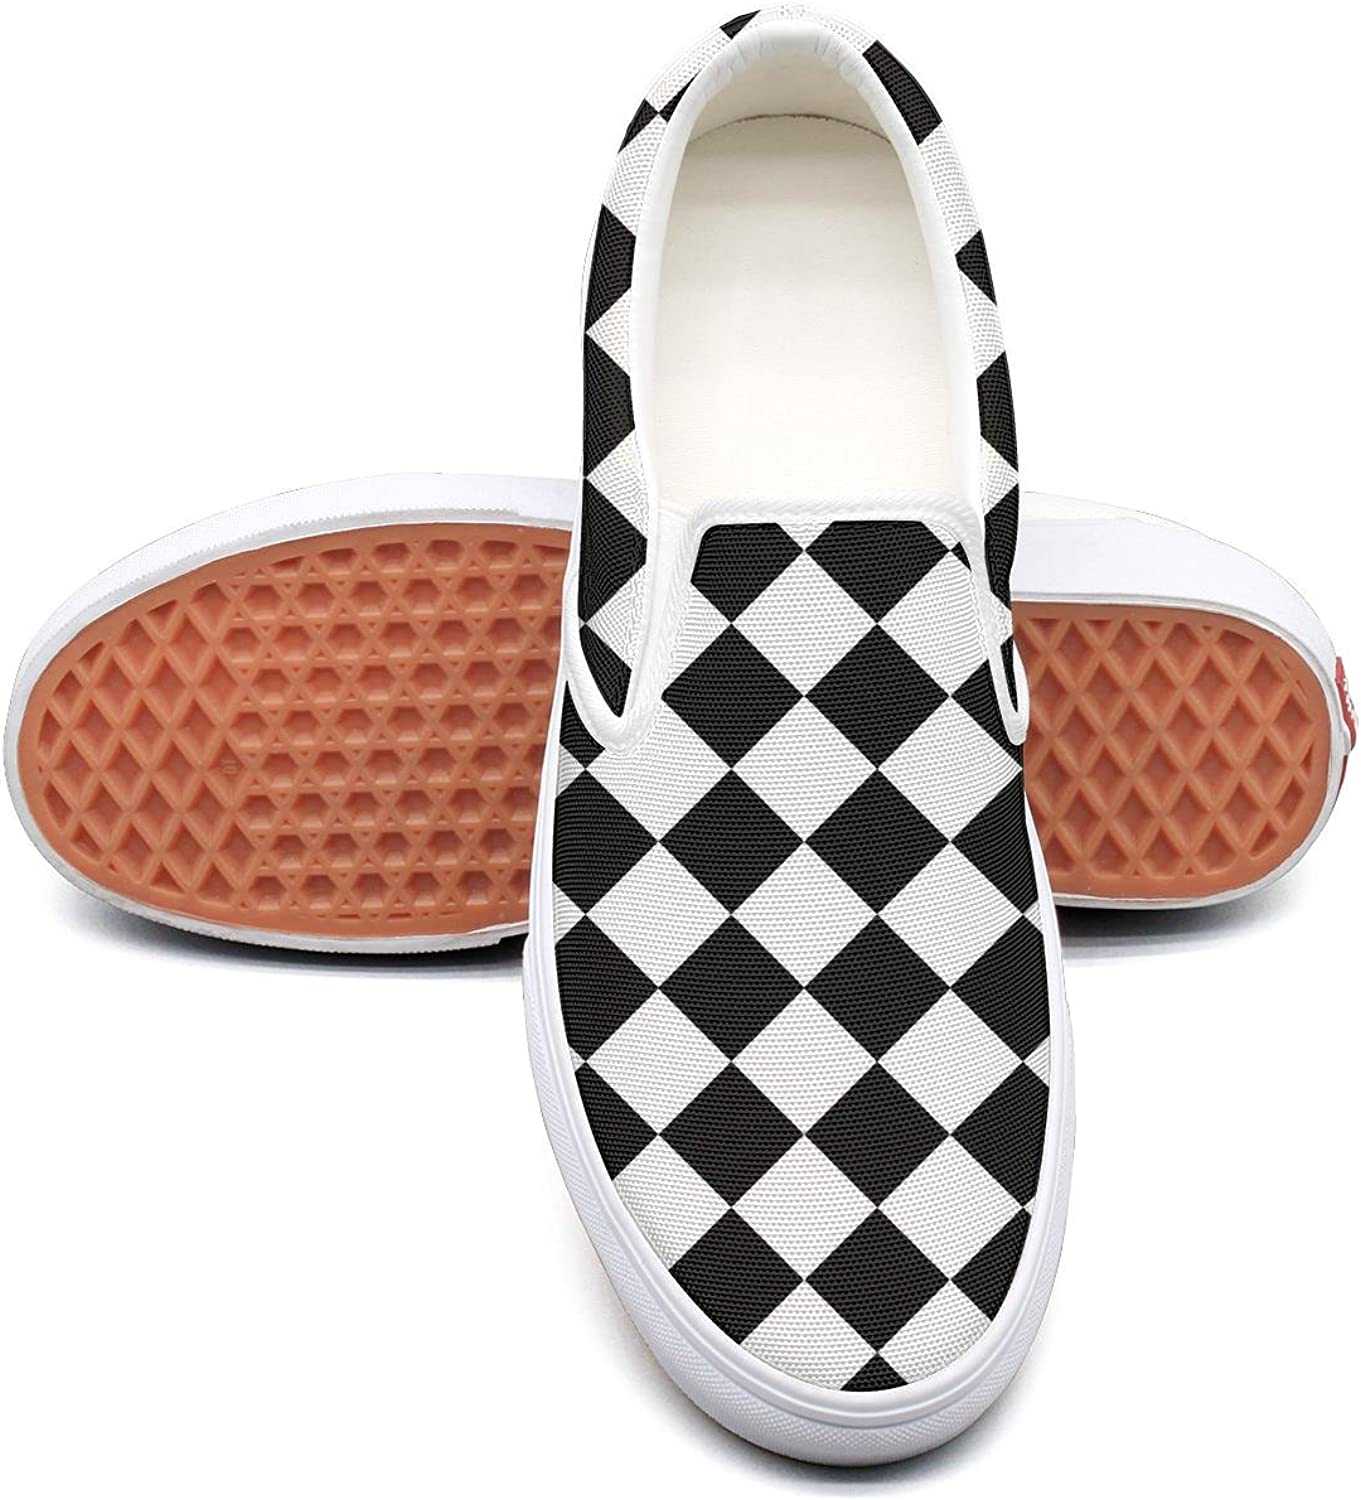 Abstract Mosaic Checkerboard Slip on Rubber Sole Sneakers Canvas shoes for Women Casual